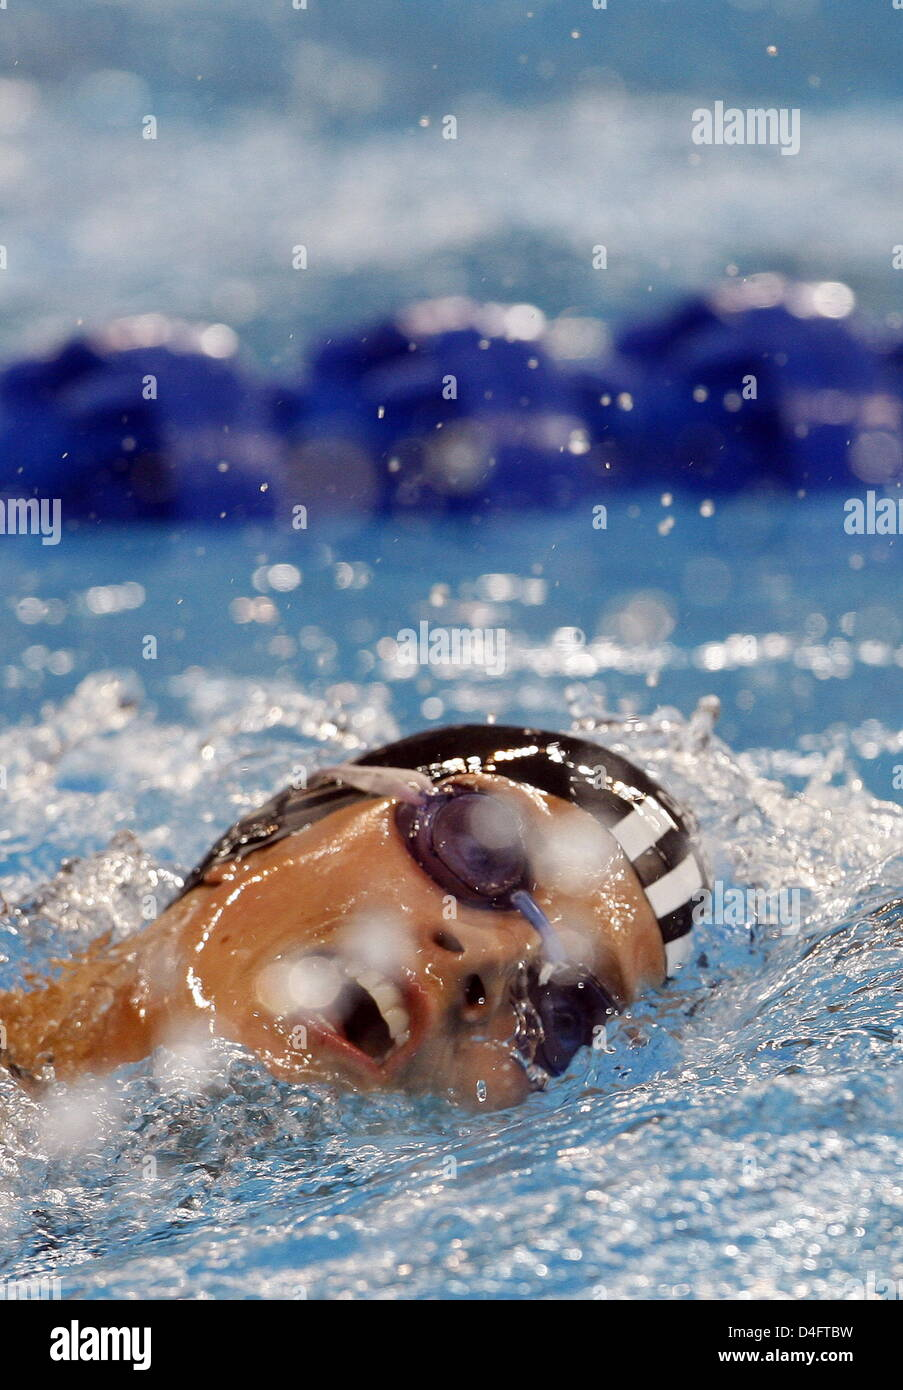 Lena Schoeneborn of Germany competes during the Women's Swimming 200m Freestyle in the Yingdong Natatorium at - Stock Image